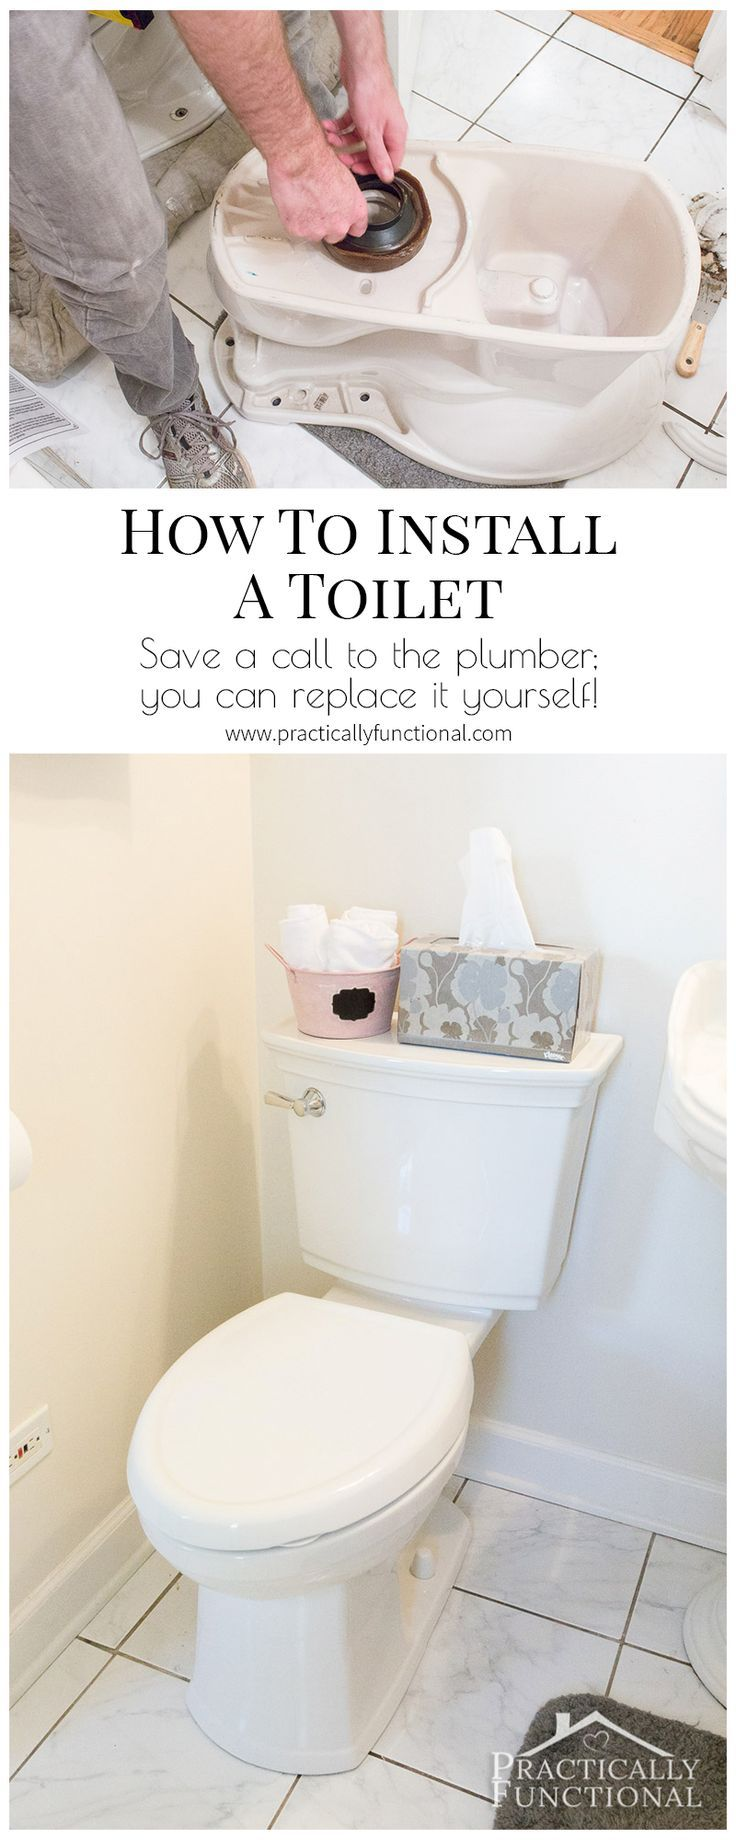 Install A Toilet How To Install A Toilet House Pinterest Bathroom Toilet And